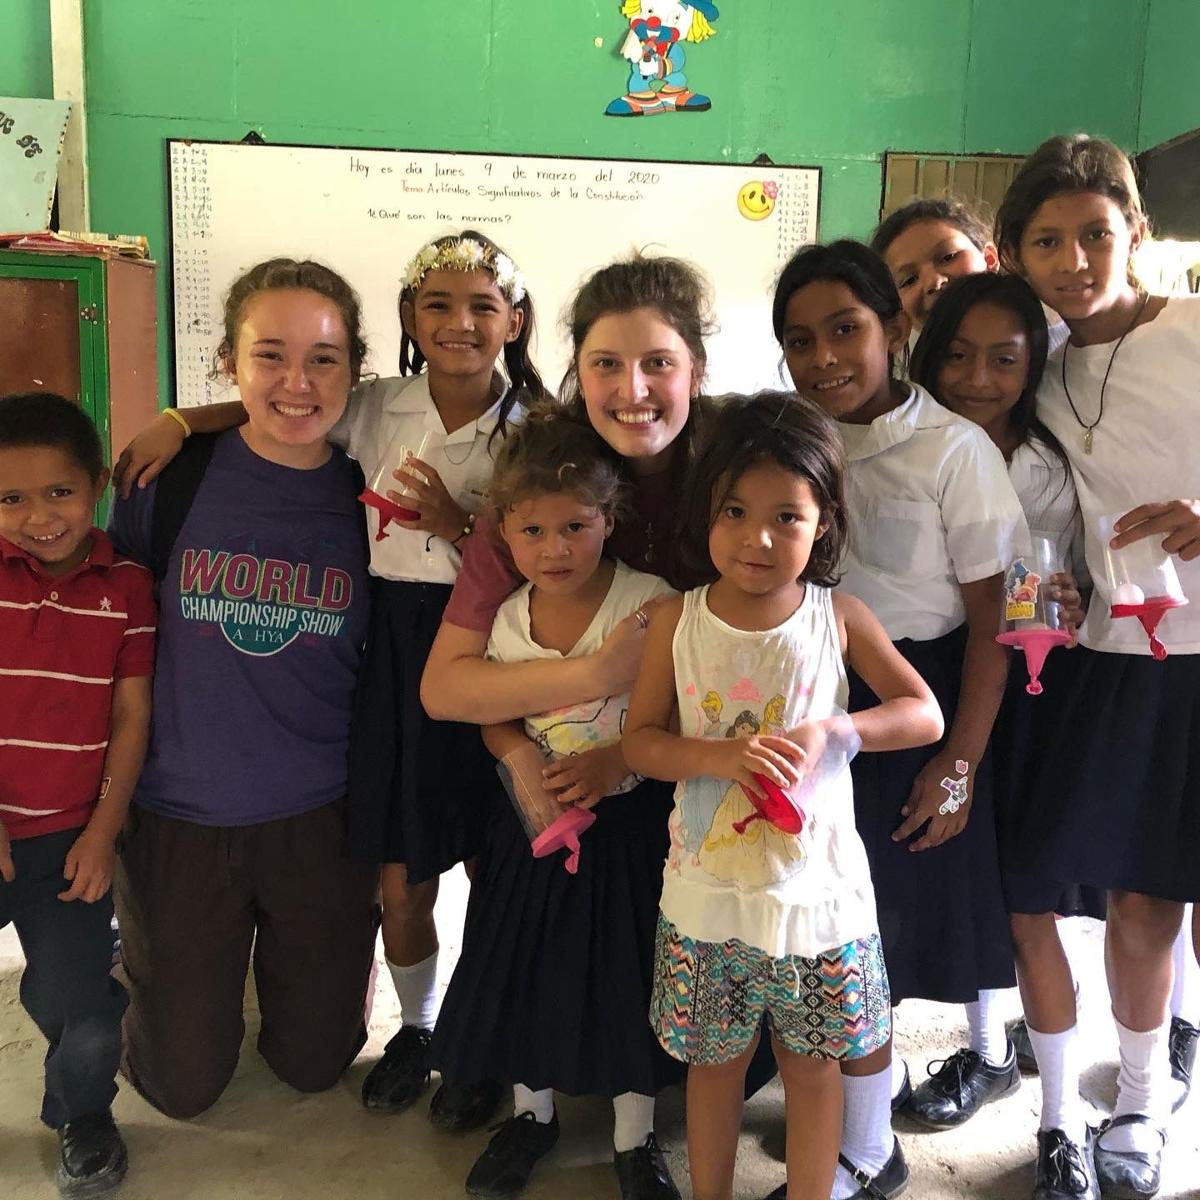 An eye-opening trip to Central America - students